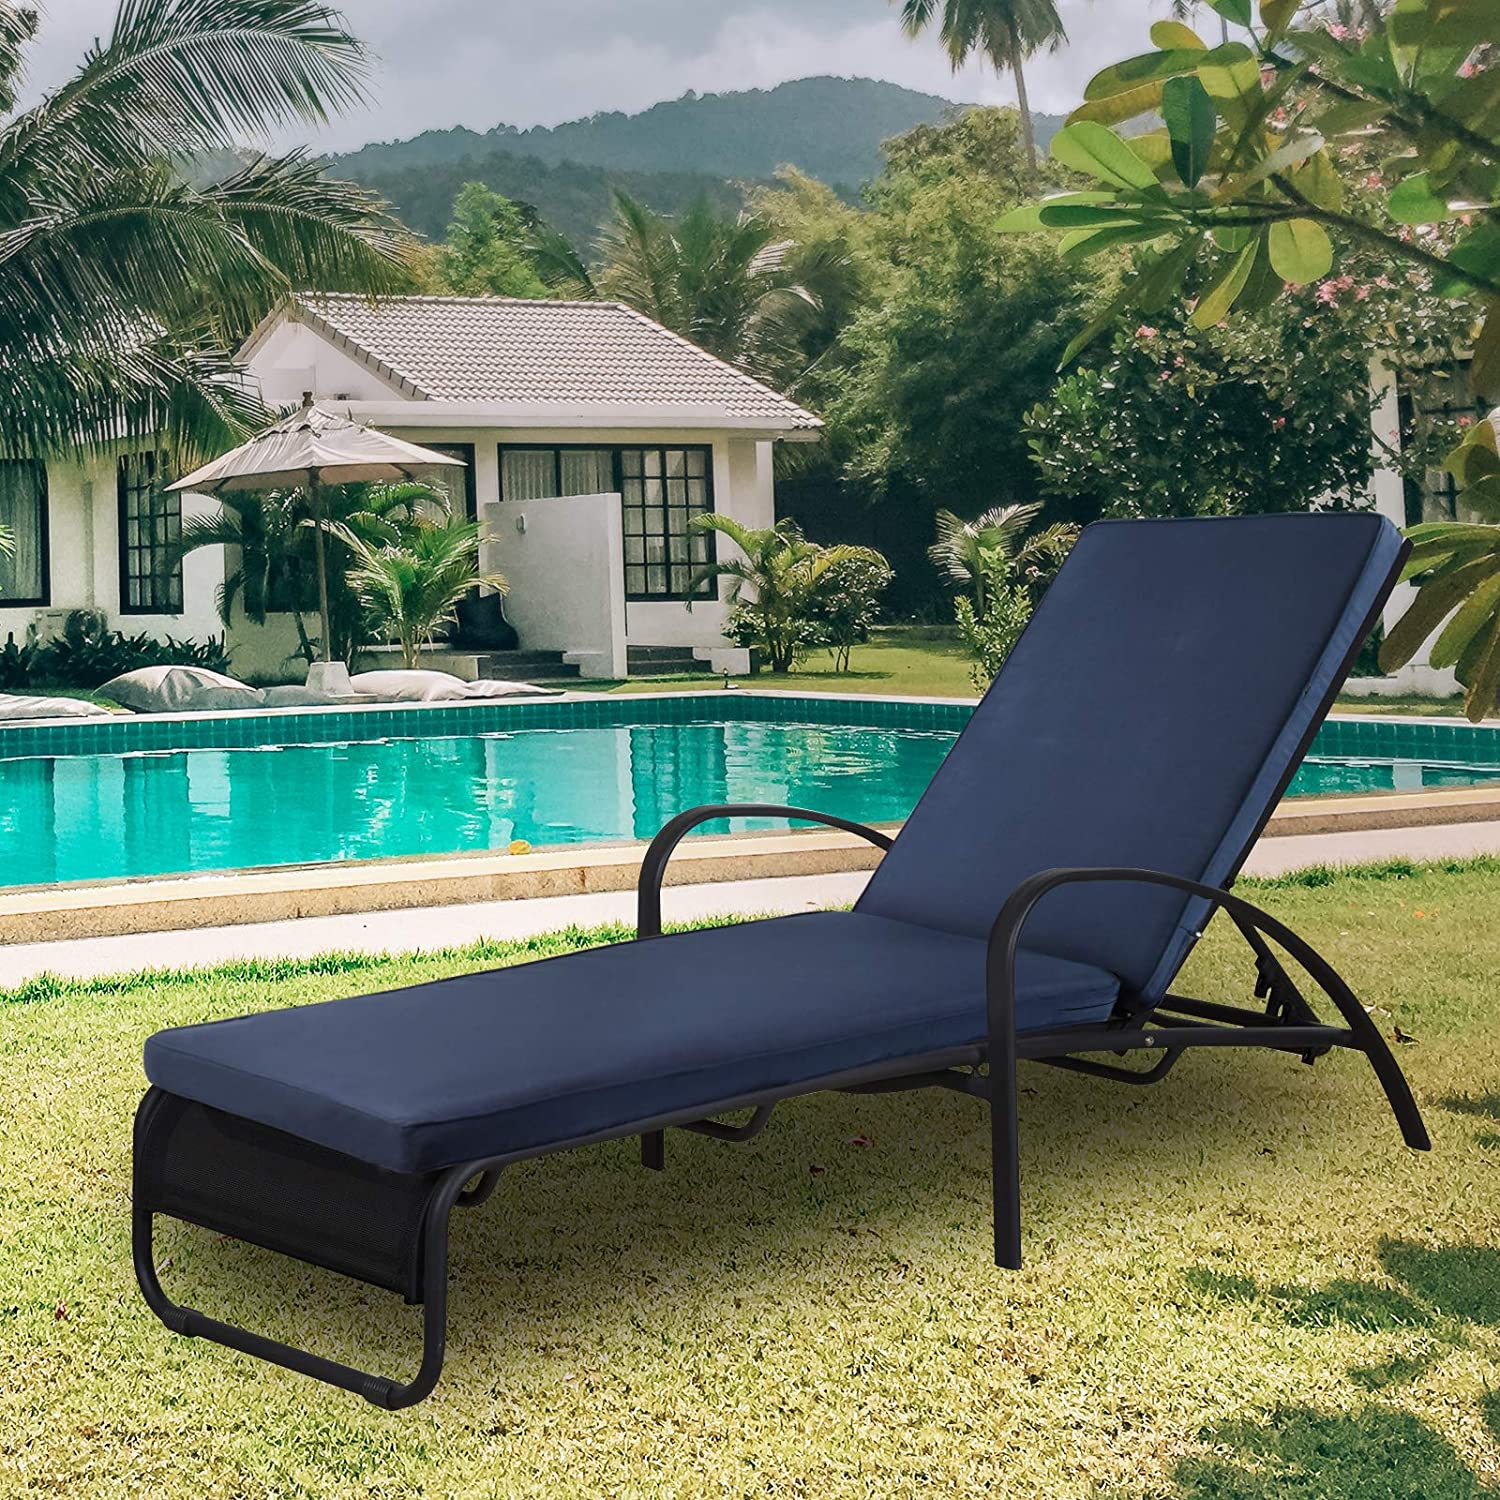 Outdoor/Indoor Chaise Lounge Cushion 78.7